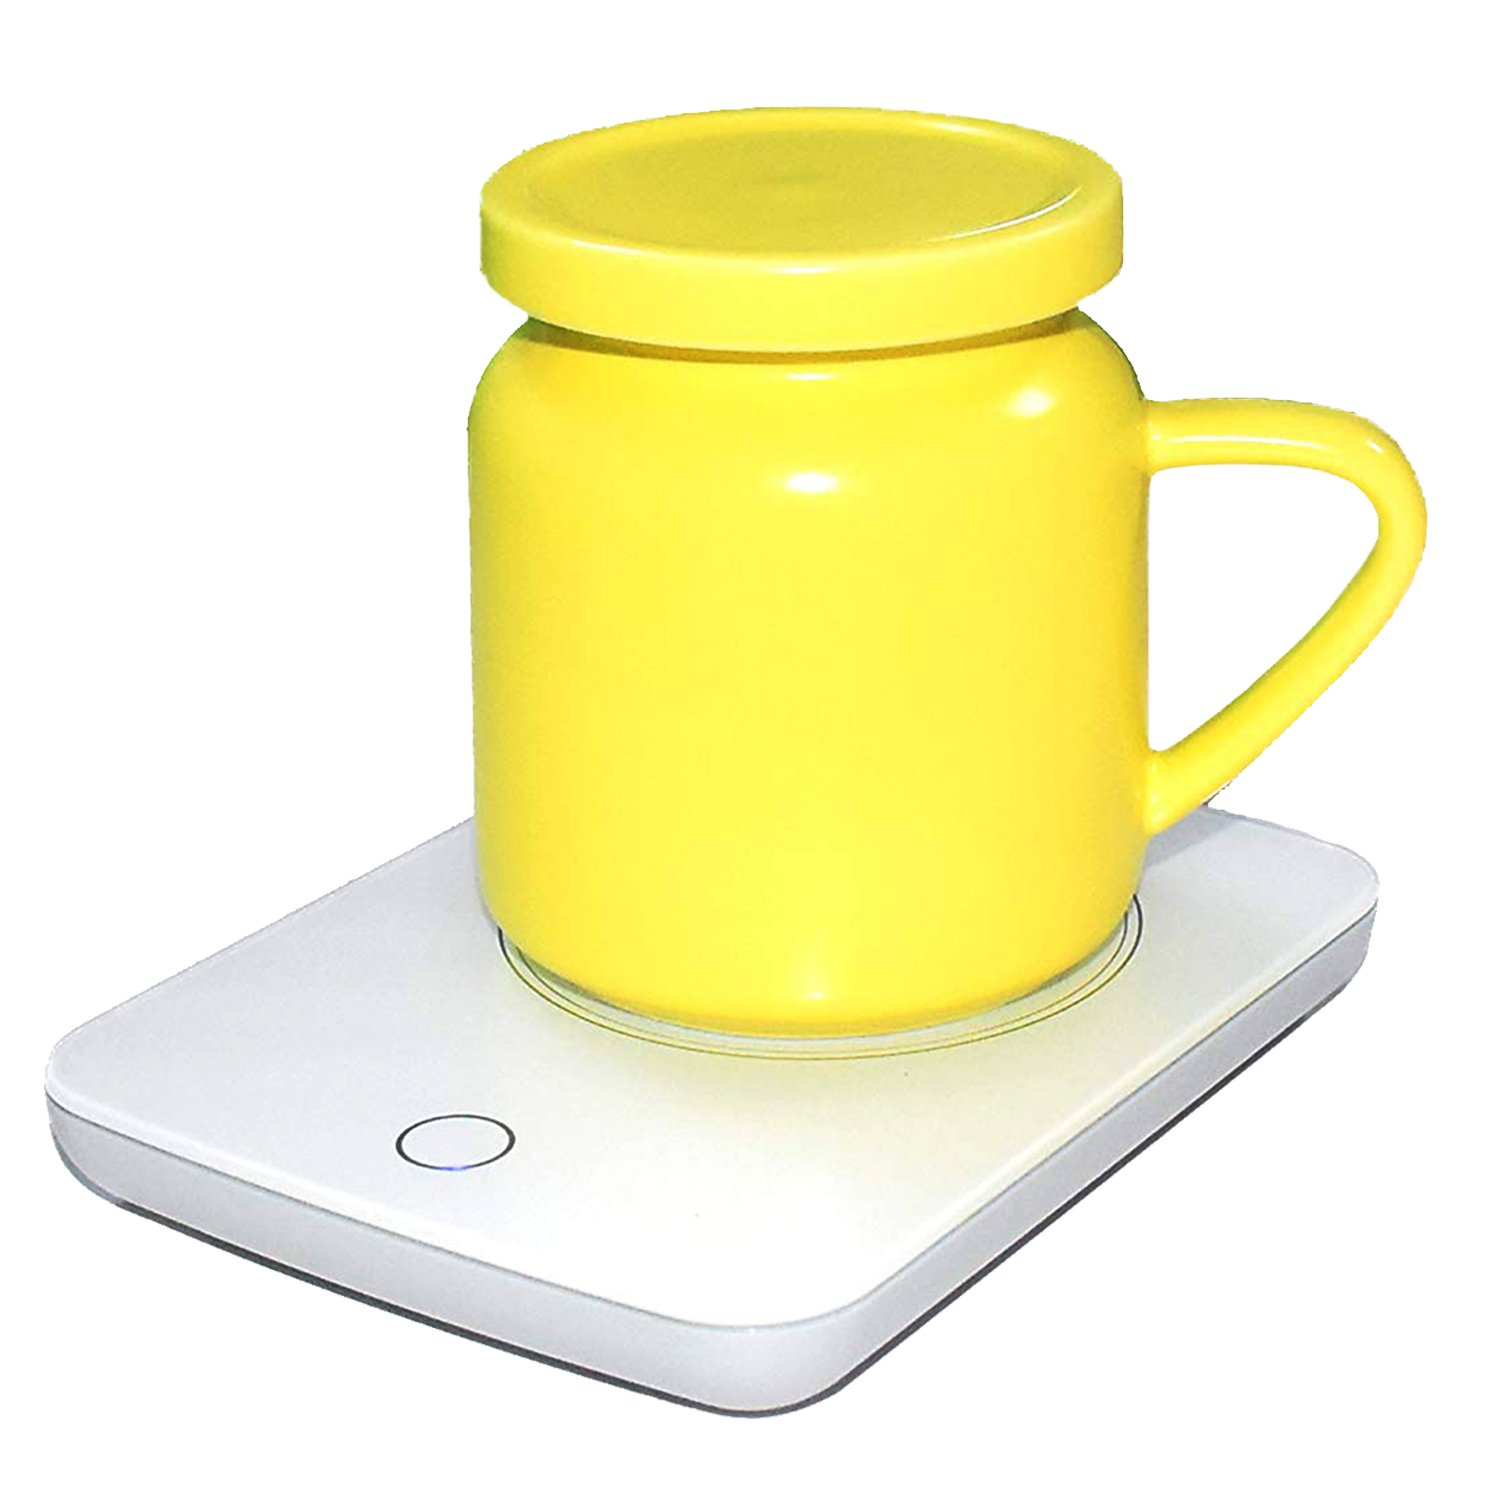 Coffee Mug Warmer For Desk Auto Shut Off Beverage Warmer-(Up to 131F℉/55℃) for Home & Office Use (with Yellow Ceramic Mug)